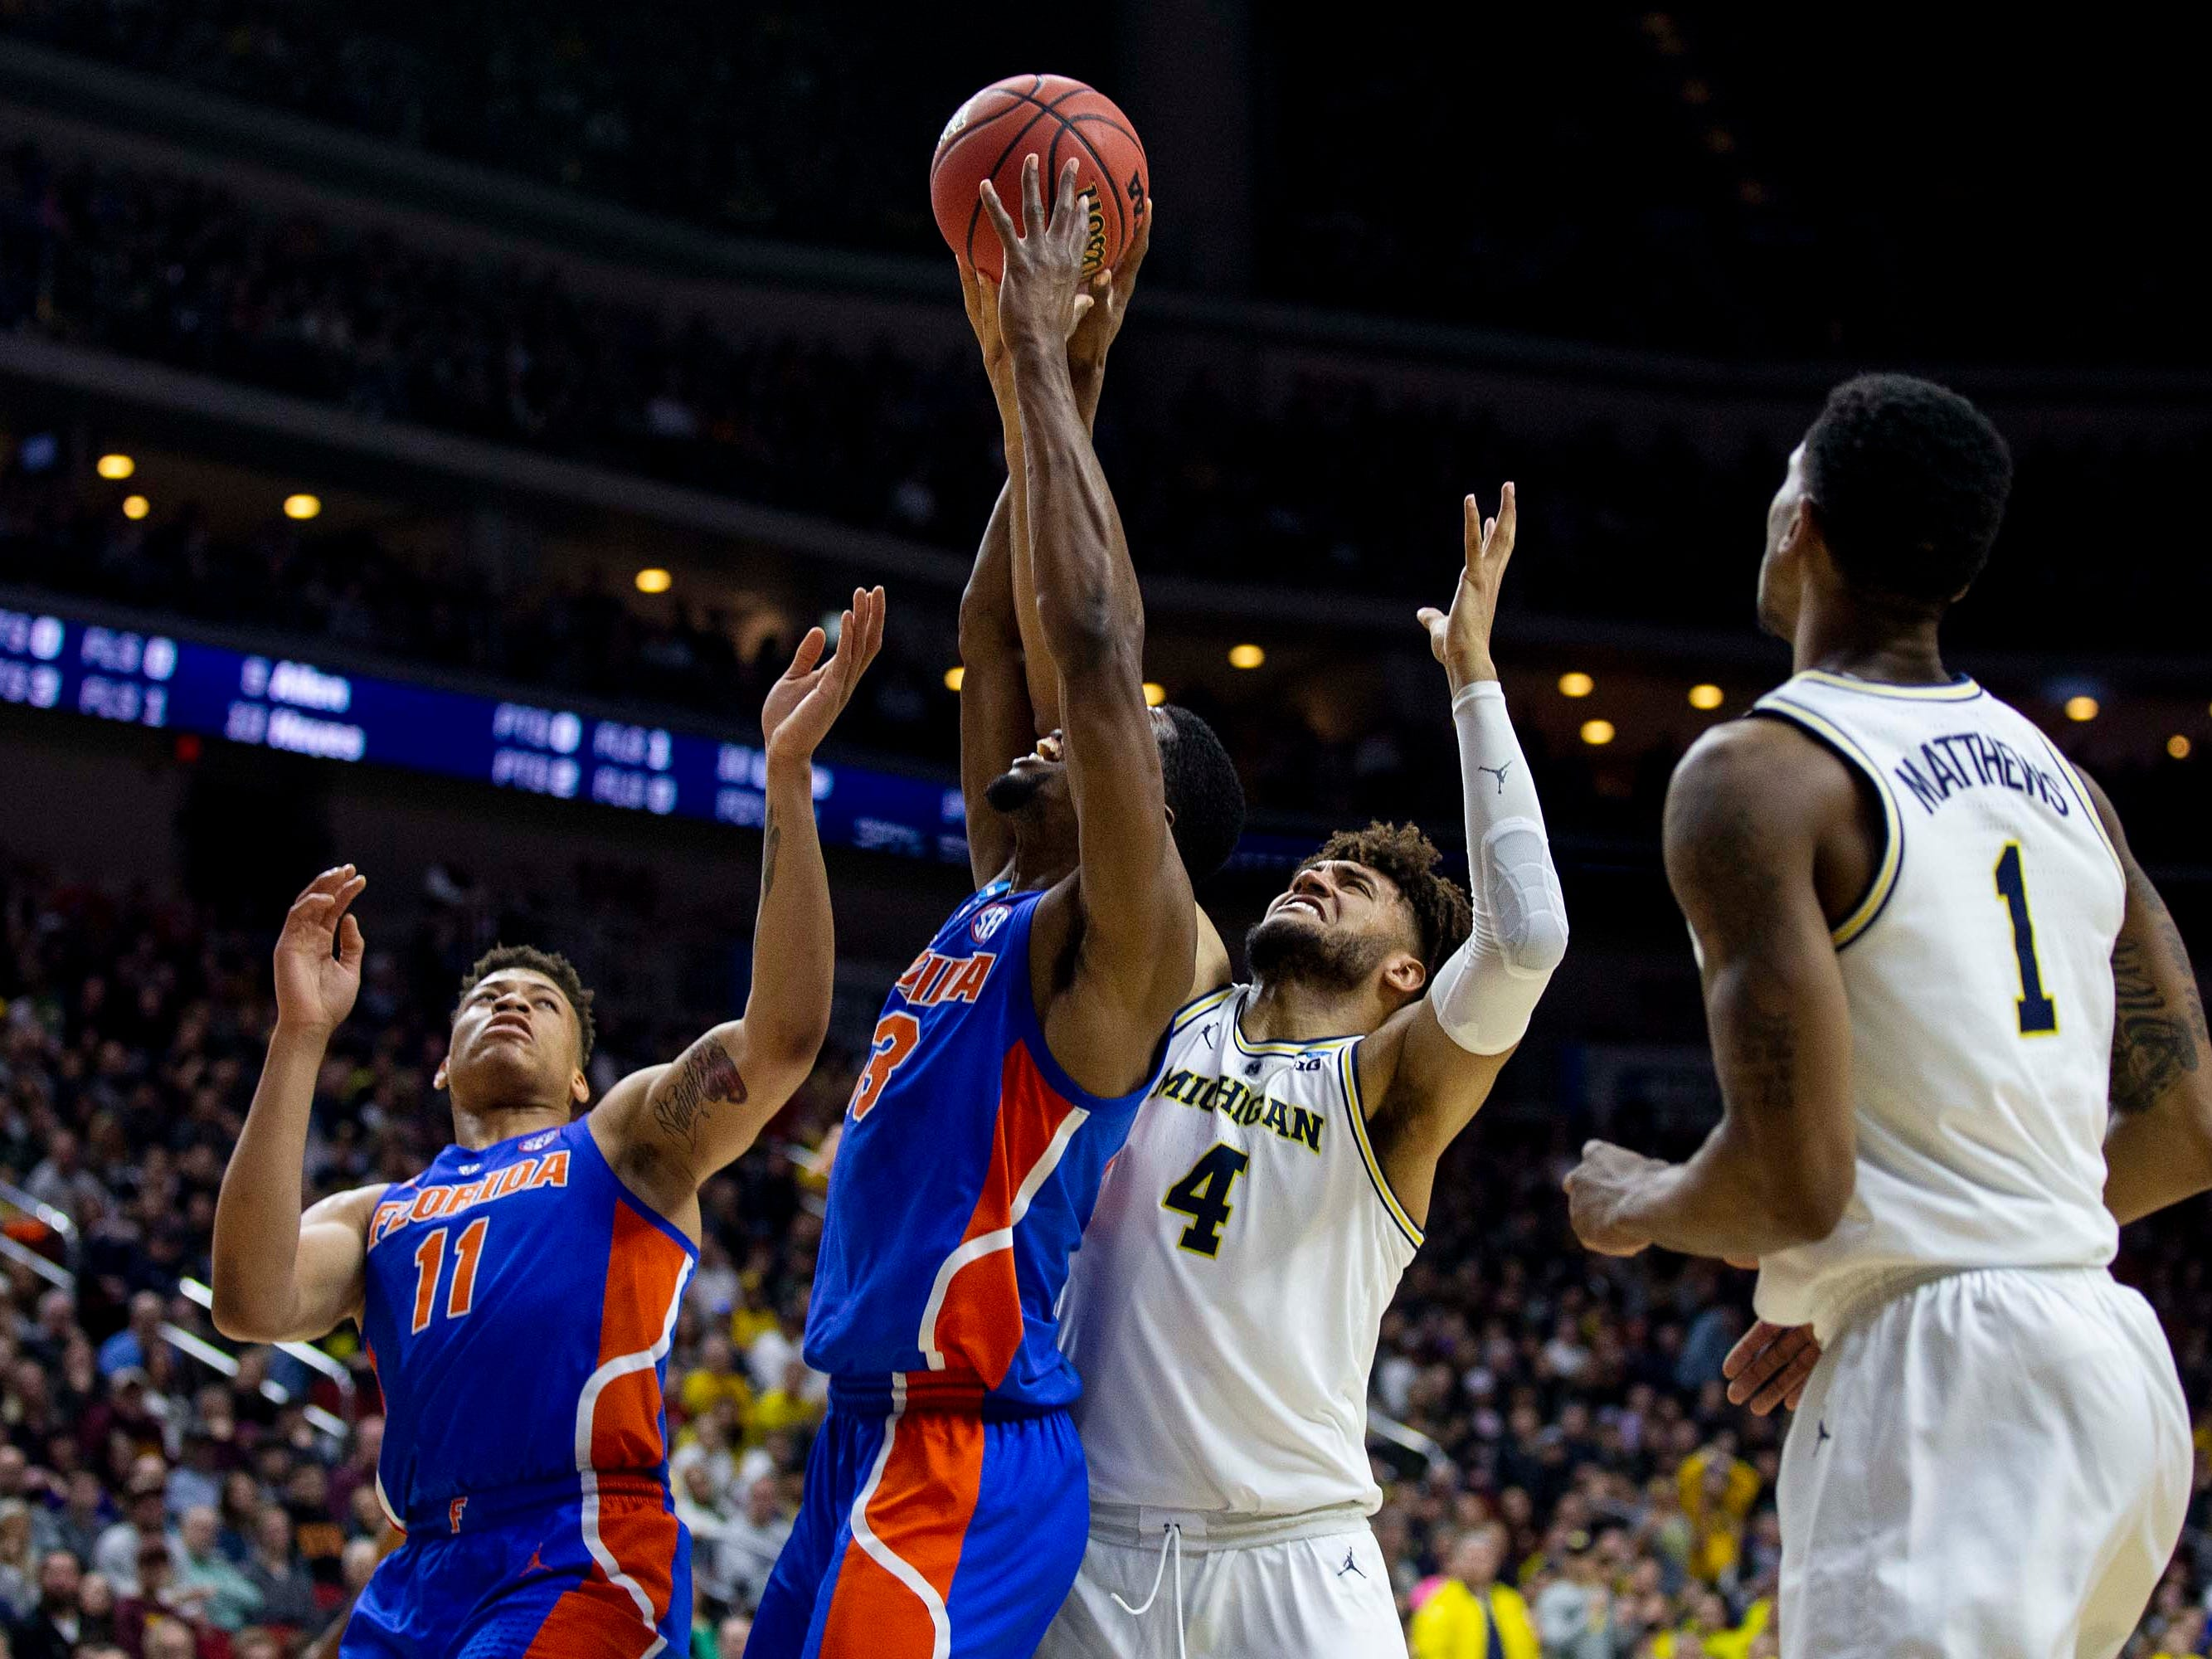 Florida's Keyontae Johnson, Kevarrius Hayes and Michigan's Isaiah Livers reach for a rebound during the NCAA Tournament second-round match-up between Michigan and Florida on Saturday, March 23, 2019, in Wells Fargo Arena in Des Moines, Iowa.